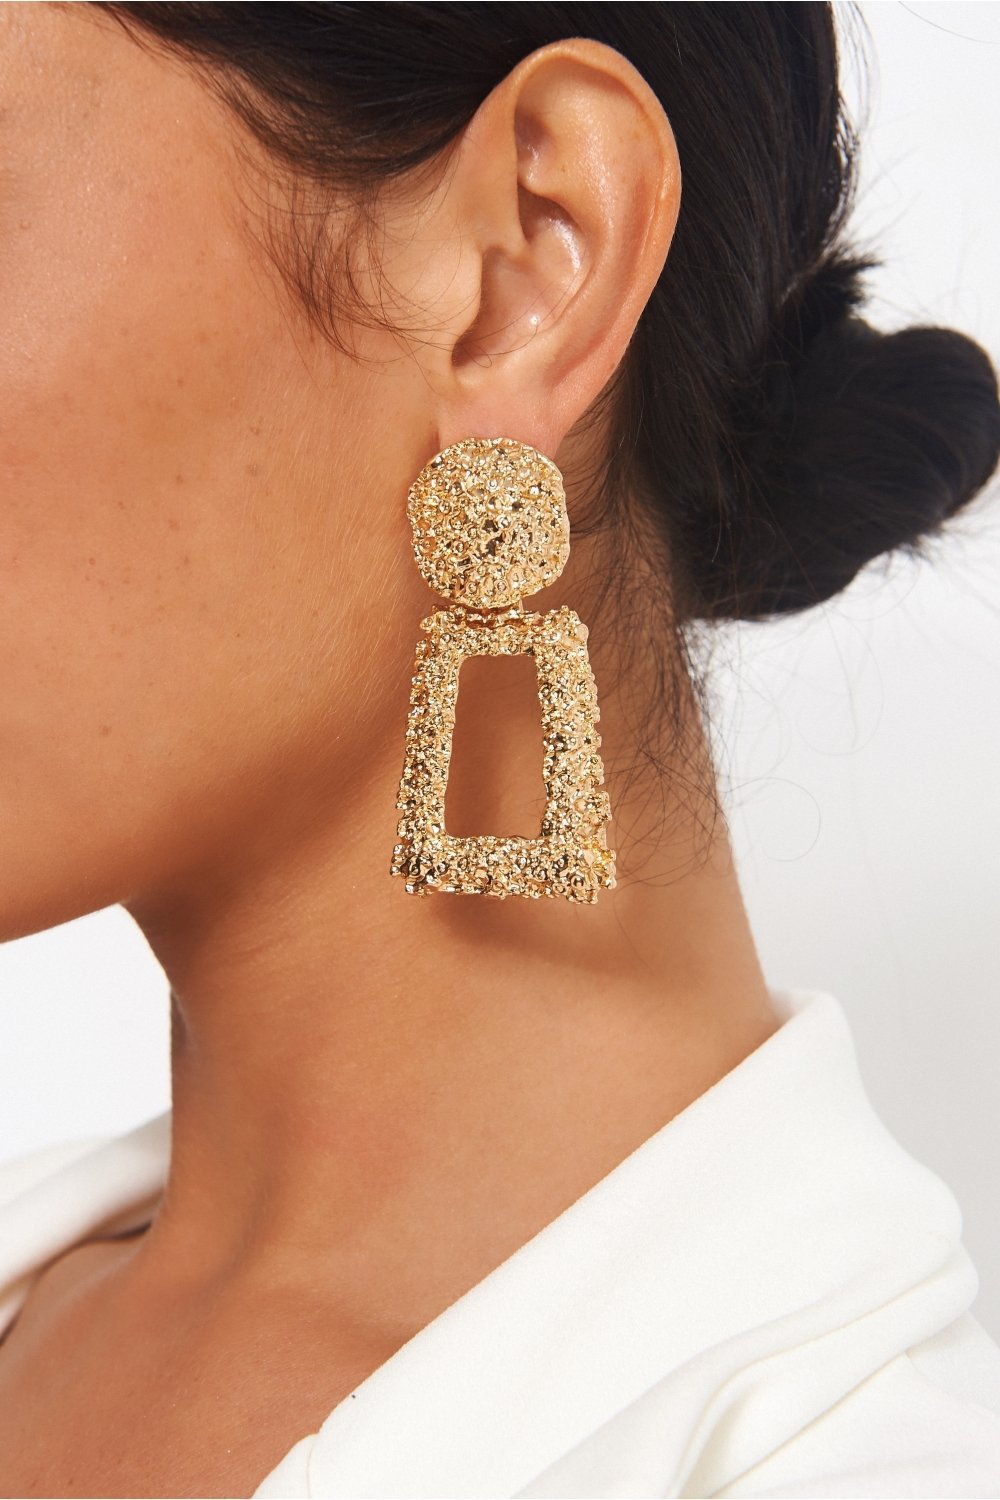 jewels gold earrings statement earrings cluster earrings zara earrings